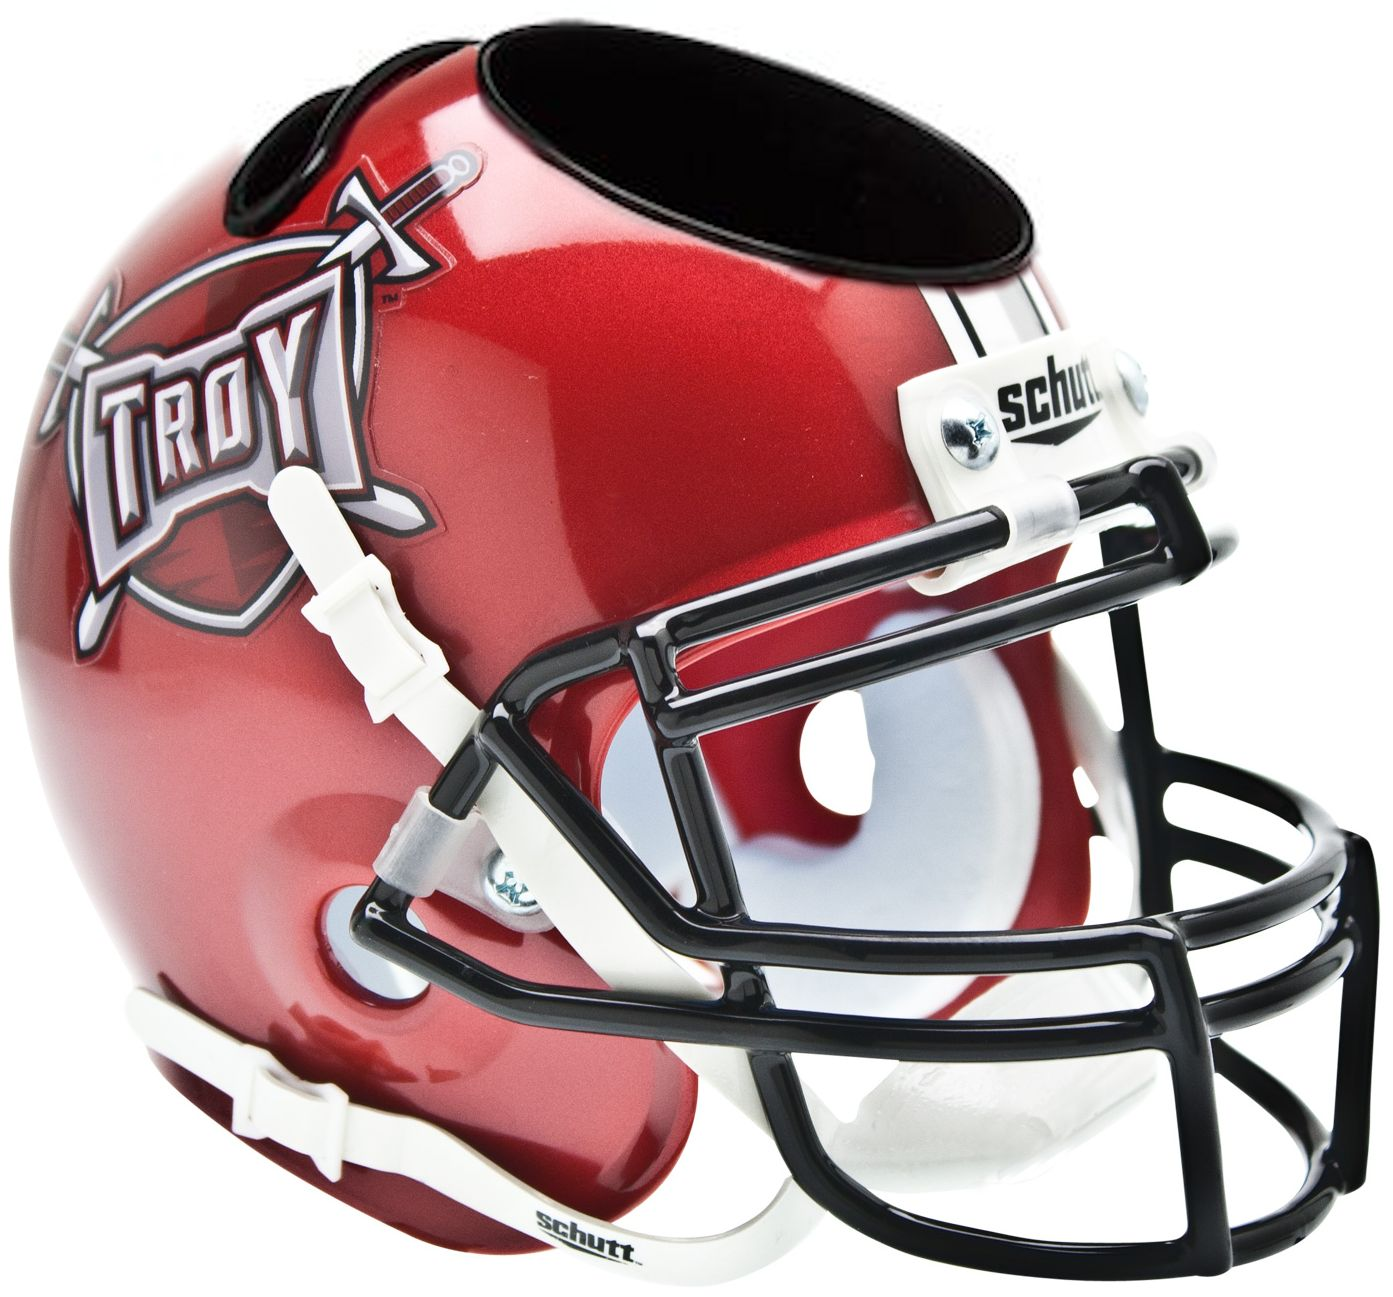 Troy State Trojans Miniature Football Helmet Desk Caddy